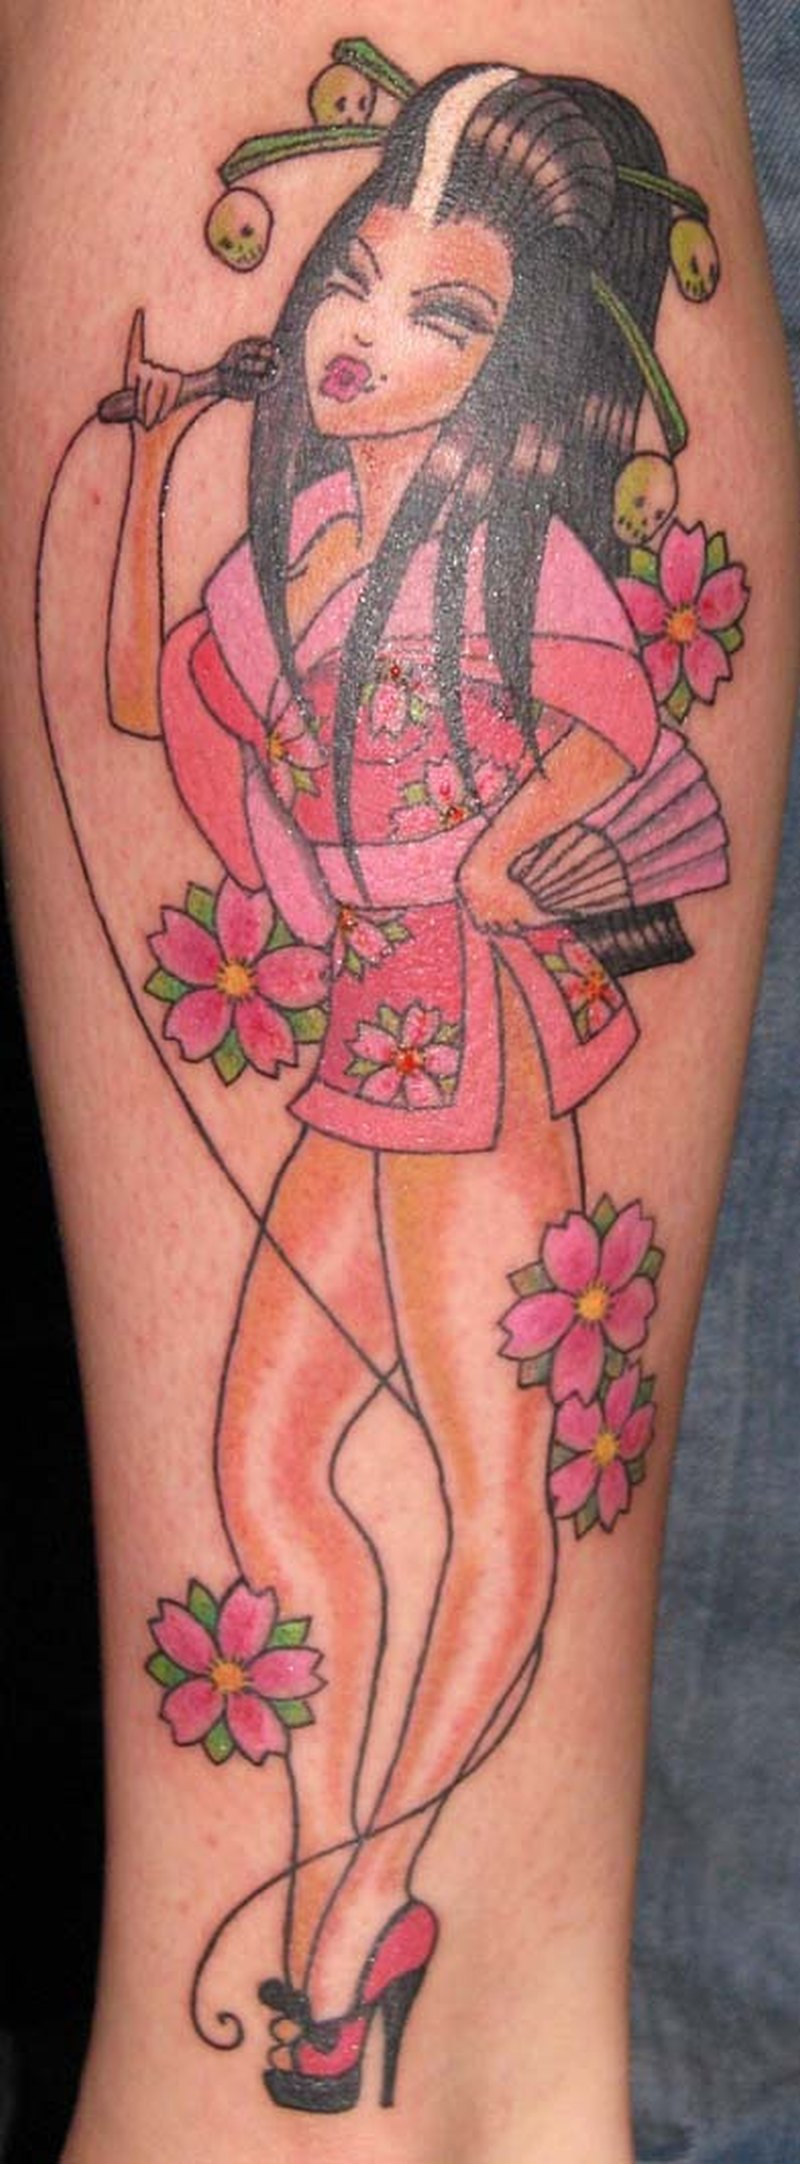 Sexy geisha with cherry blossom tattoo design